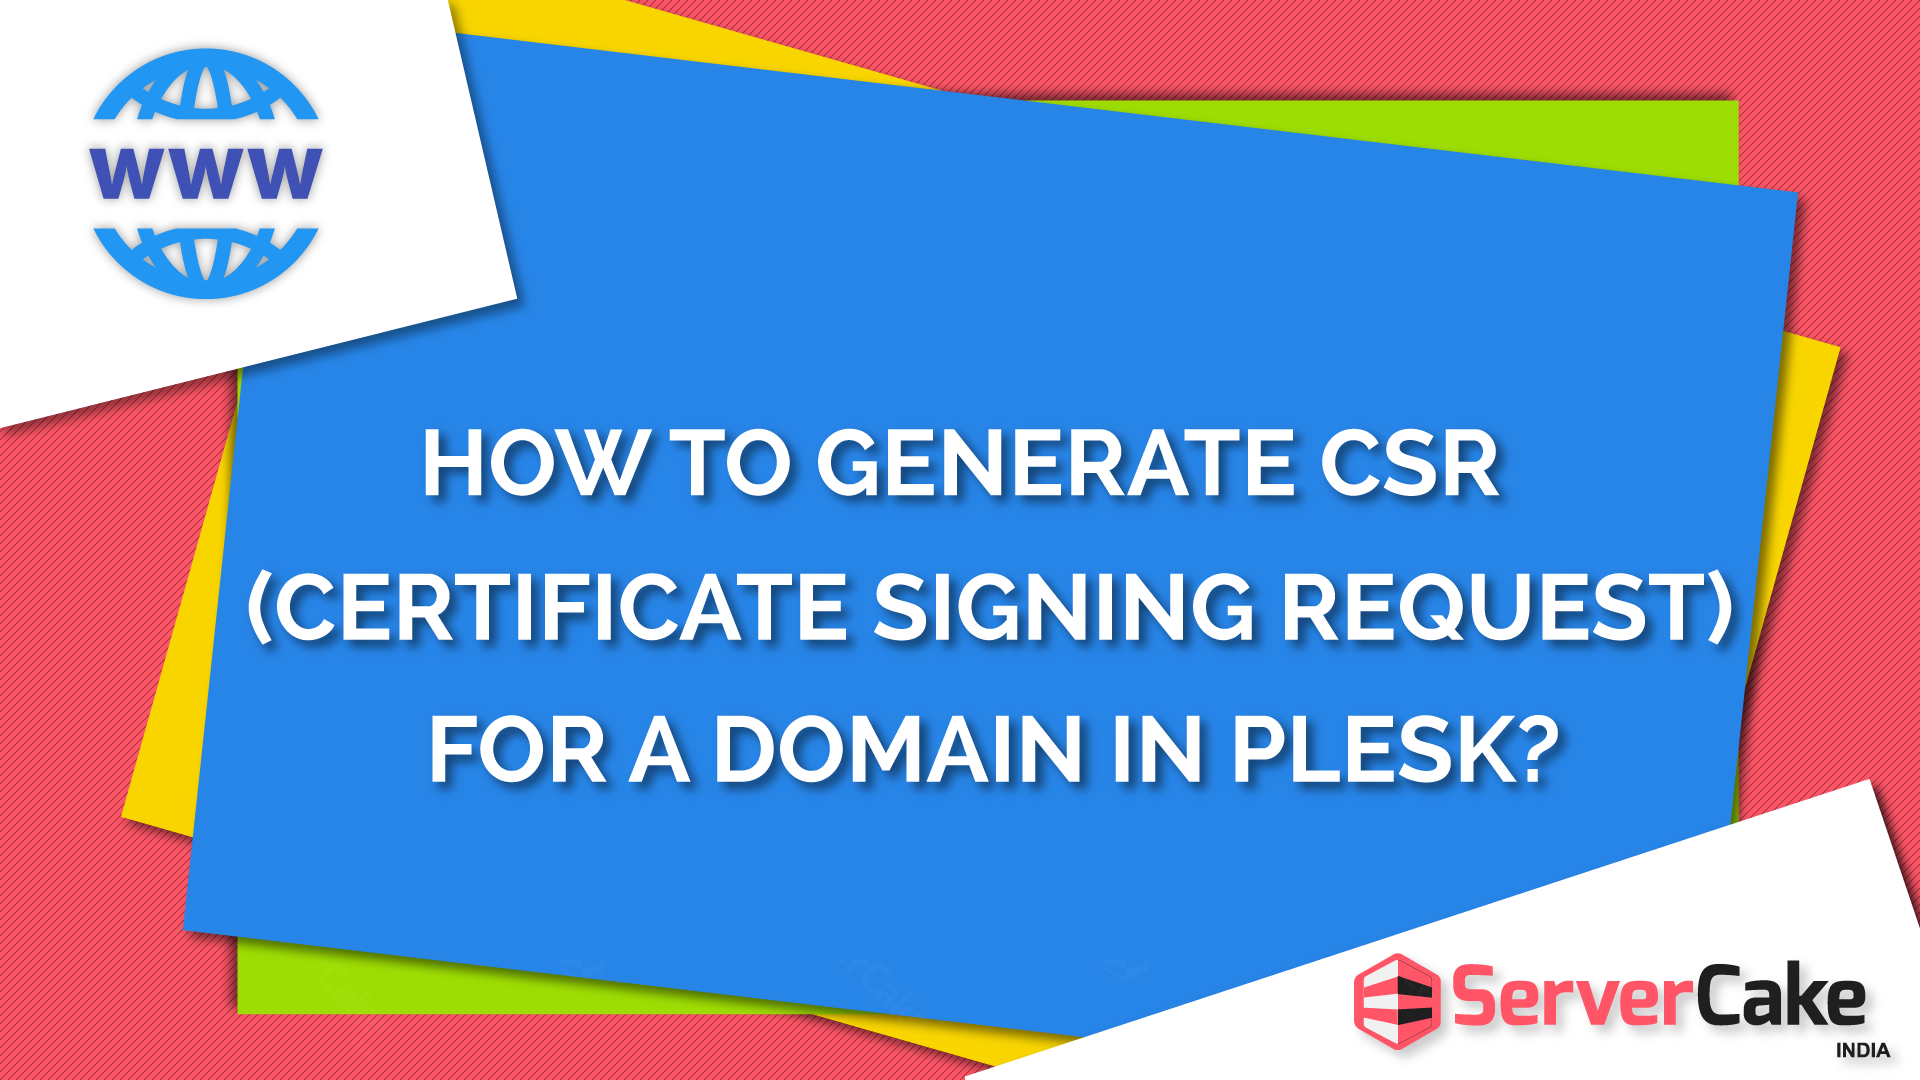 How to generate csrcertificate signing request for a domain in plesk generate csr for a domain in plesk version 12530 xflitez Image collections